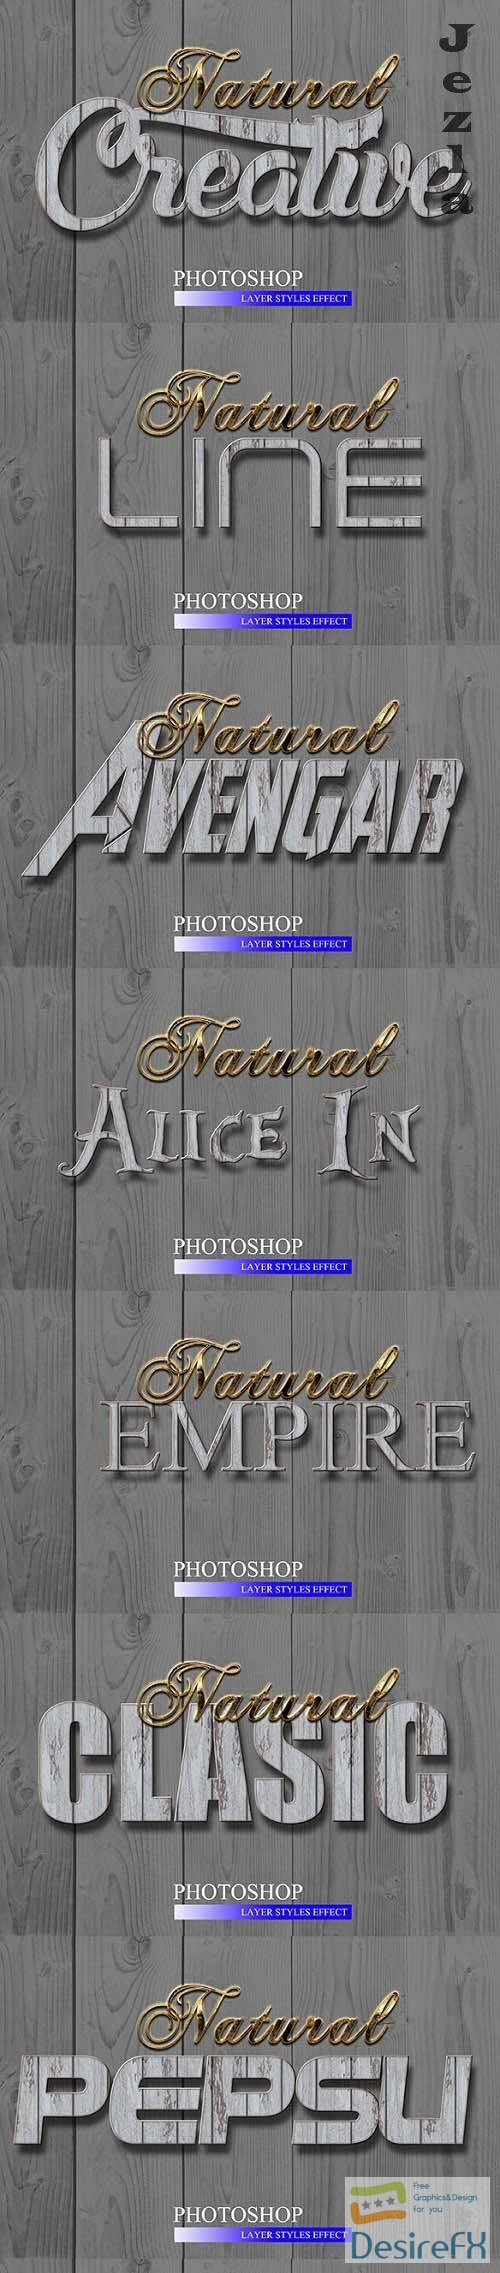 GraphicRiver - 3D Text Styles 101220 29747909